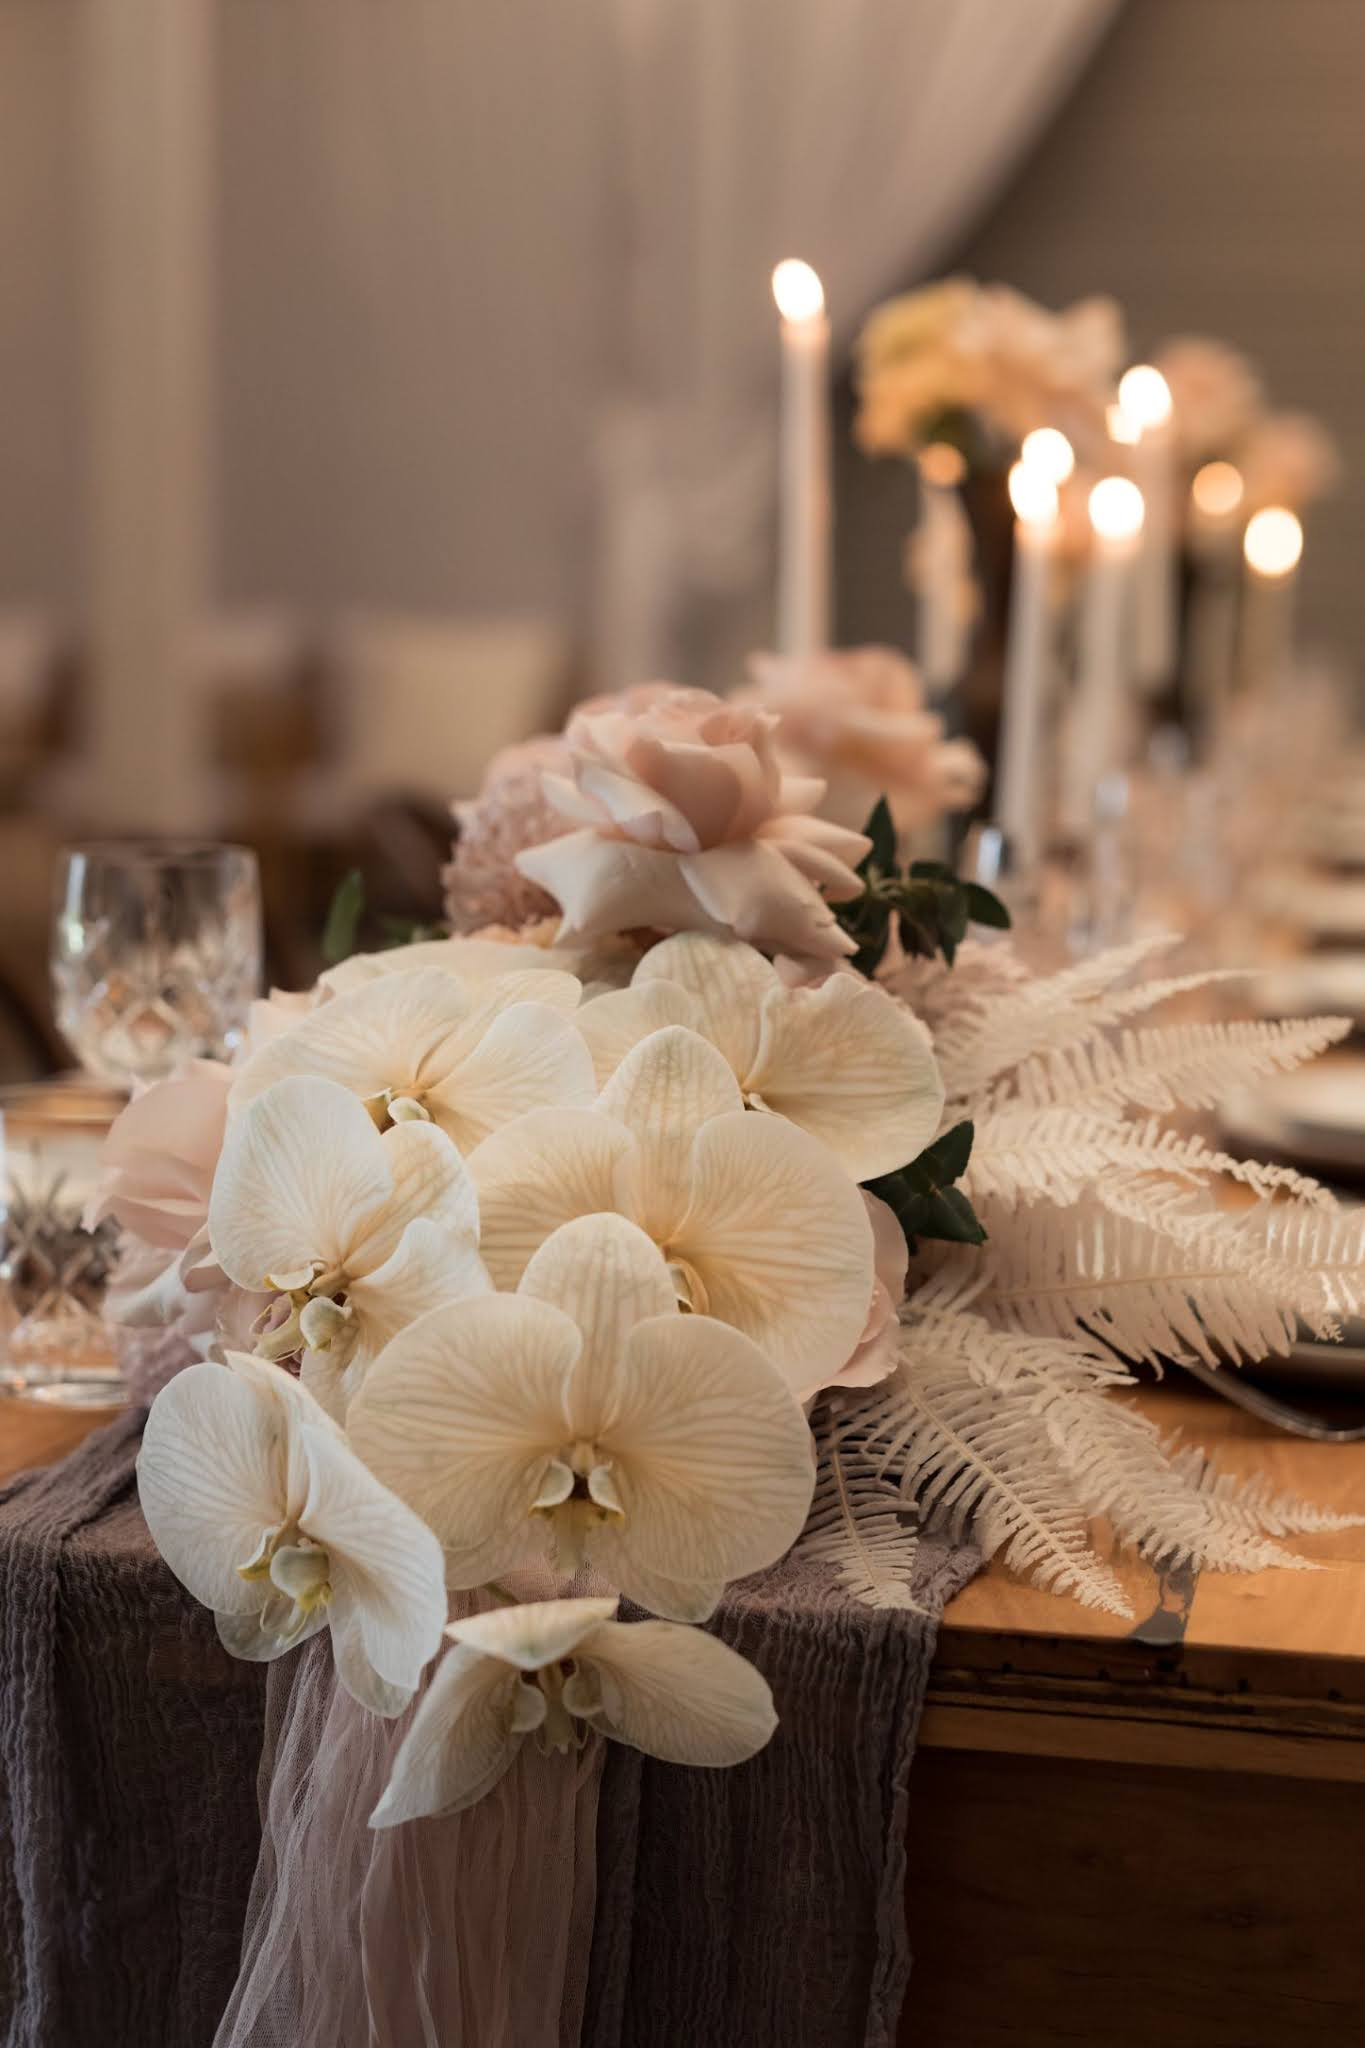 kath young photography yallingup wa perth weddings bridal gowns florals bouquet styling tablescape blush pink palette